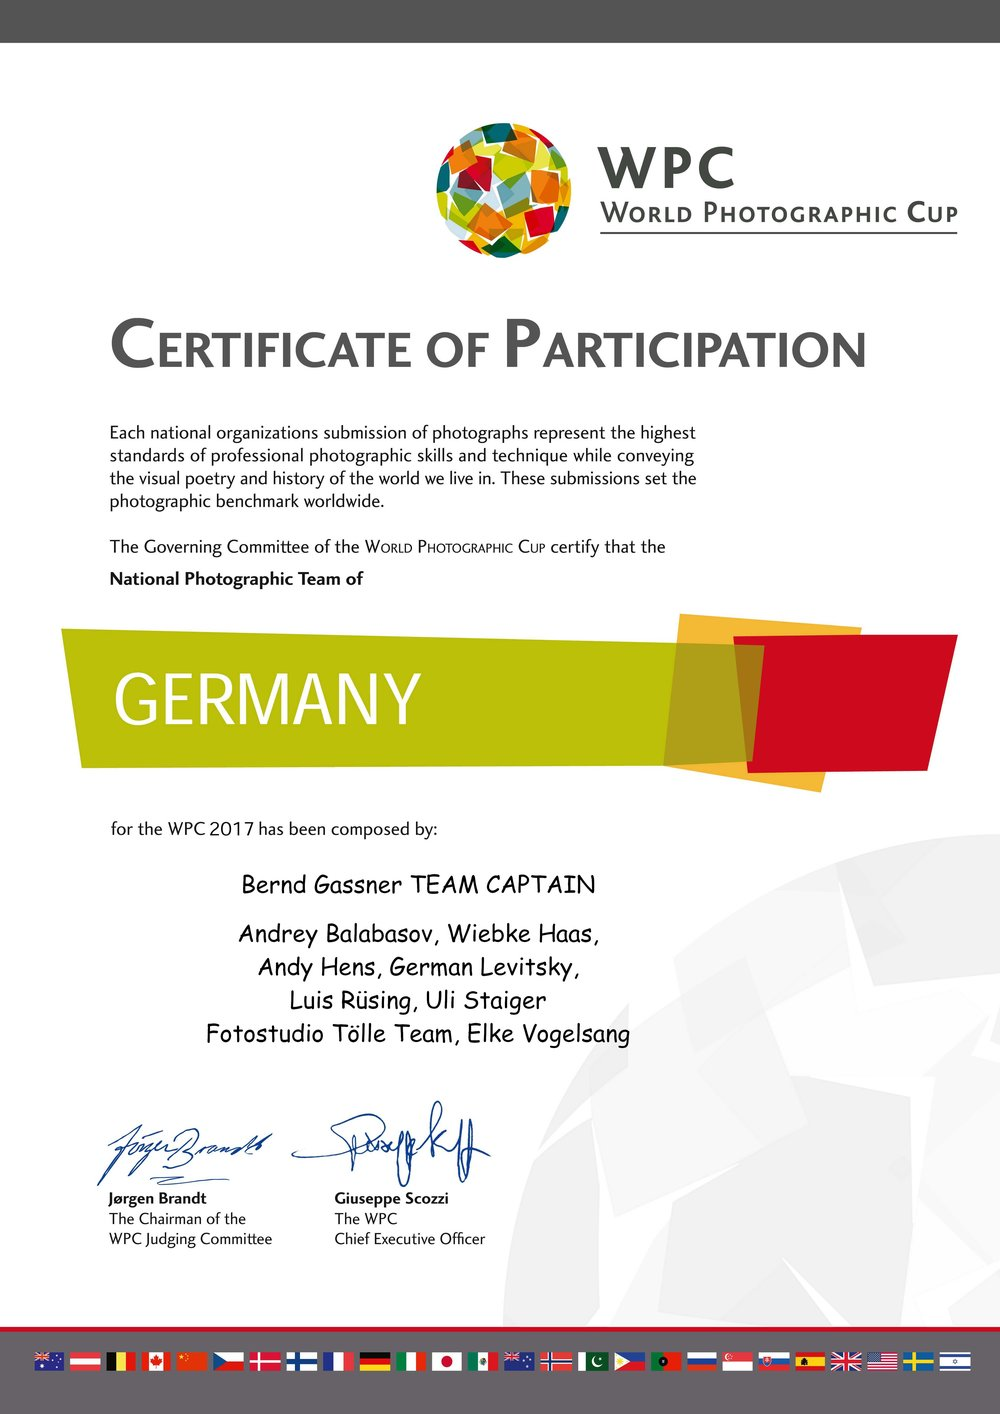 WPC_certificate_participation_2017 GERMANY.jpg